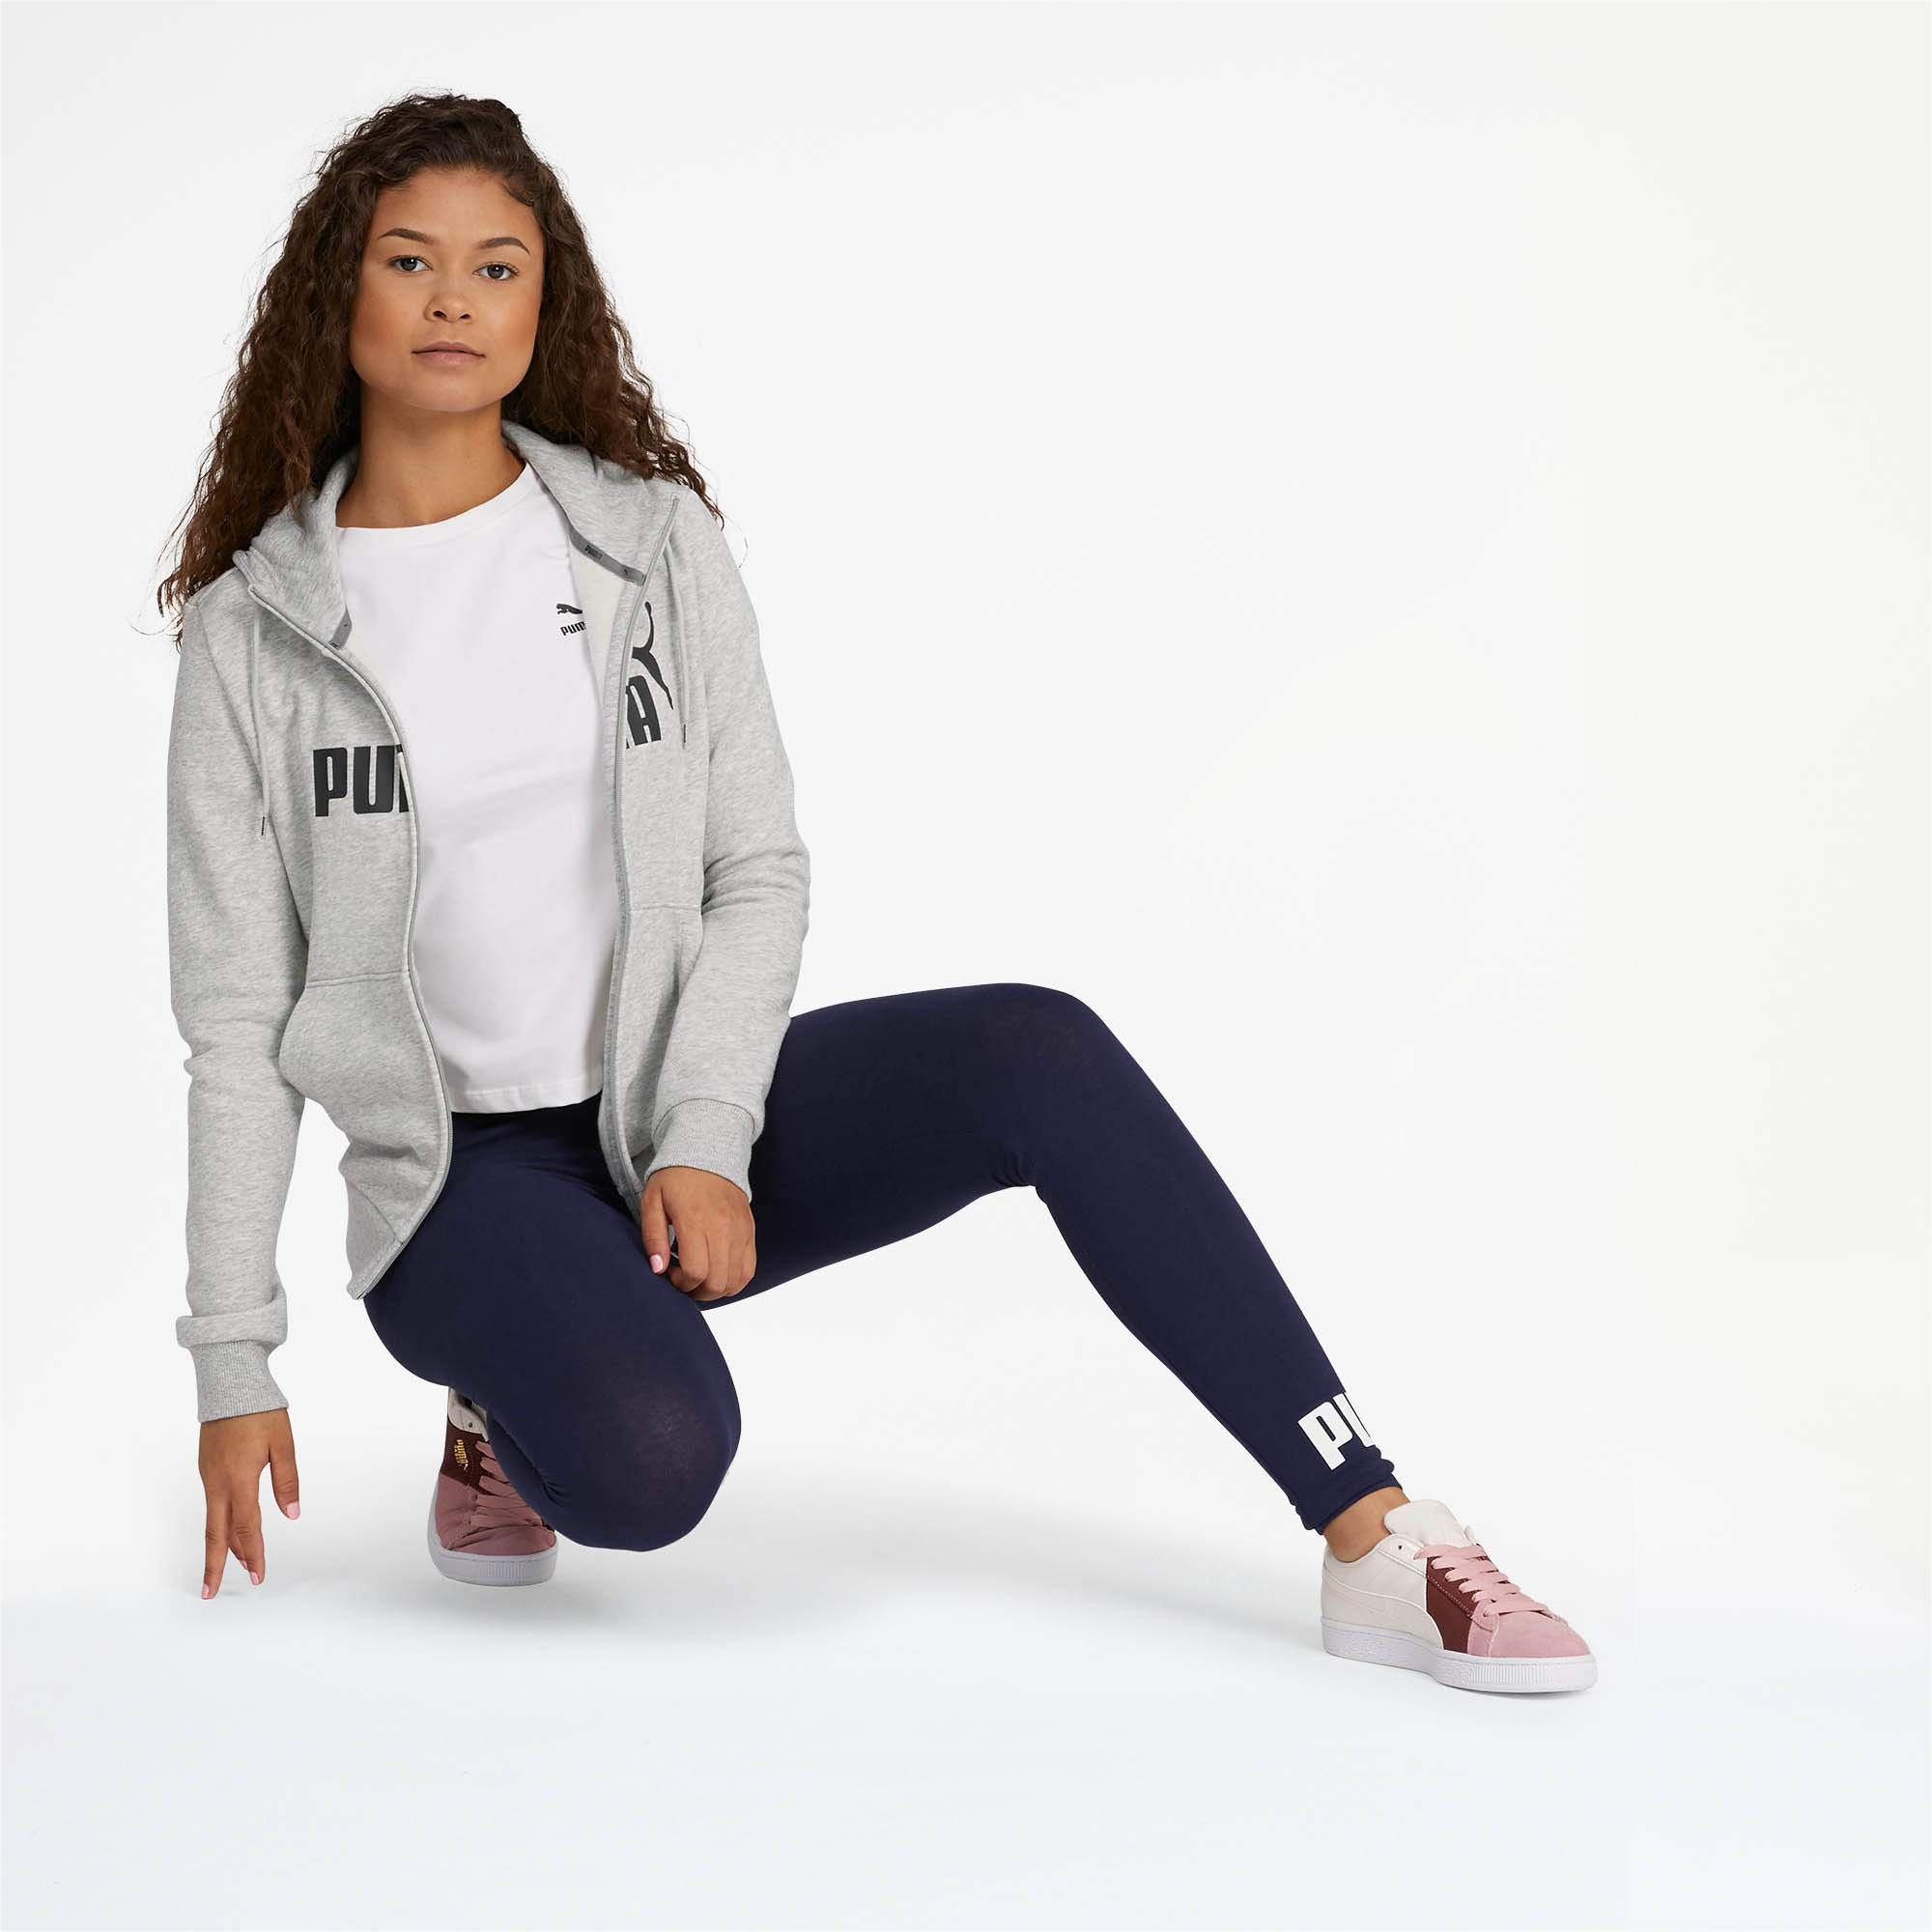 PUMA-Women-039-s-Essential-Fleece-Hooded-Jacket-Women-Sweat-Basics thumbnail 12